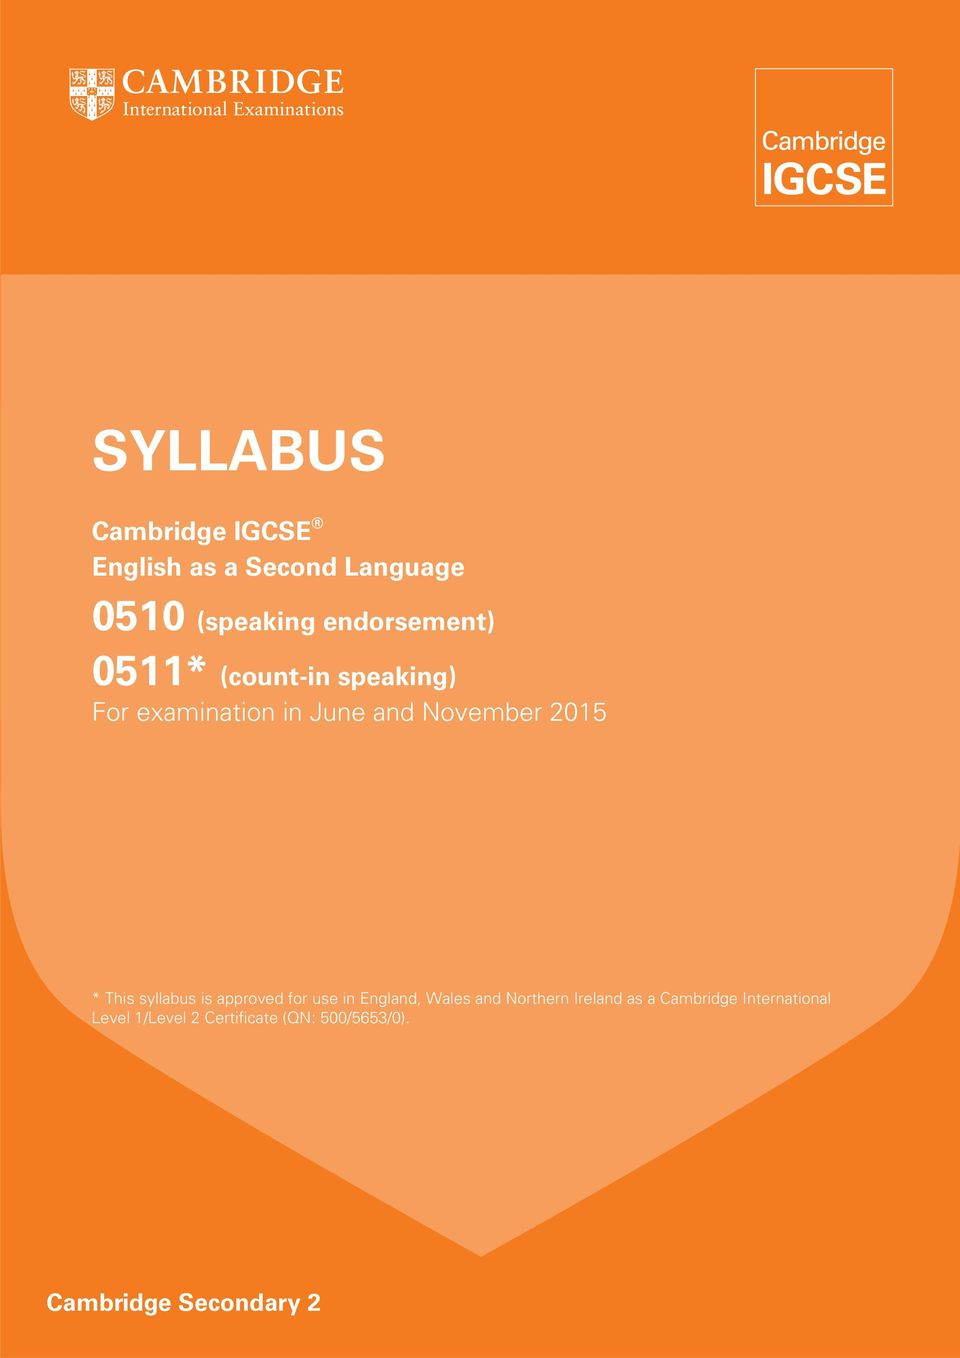 * This syllabus is approved for use in England, Wales and Northern Ireland as a